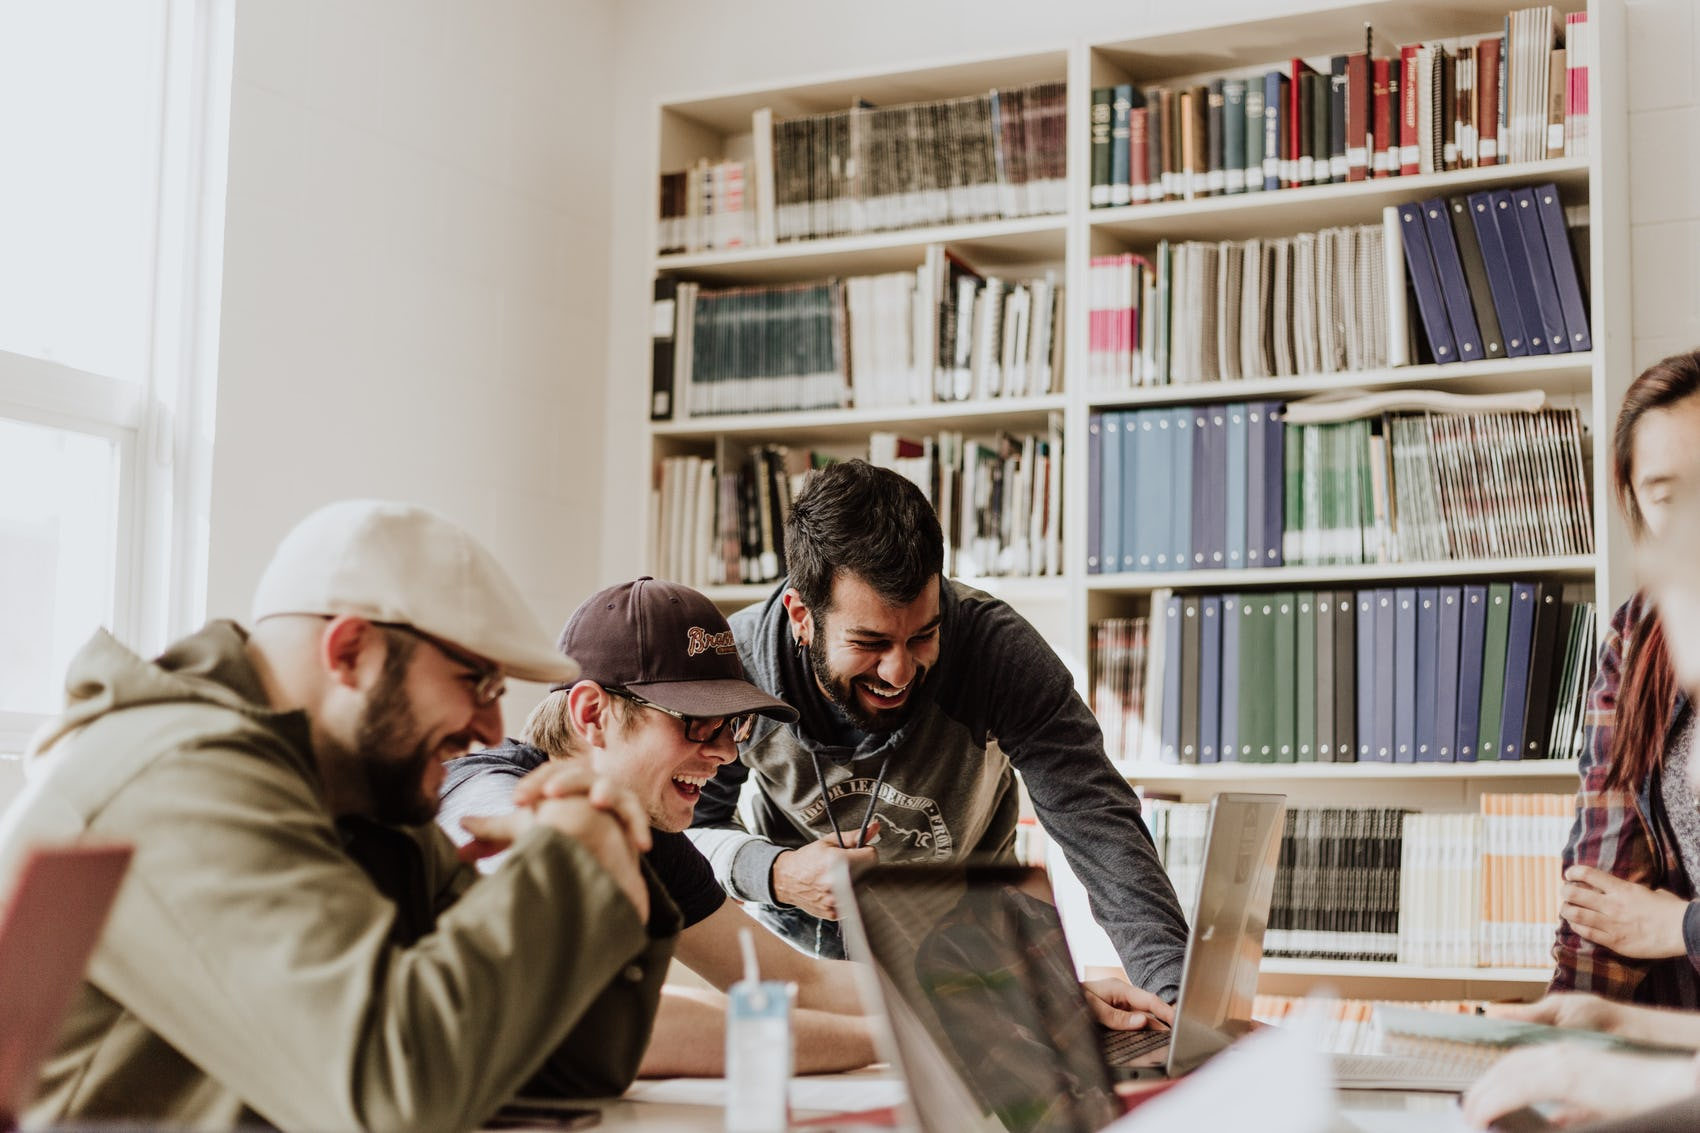 4 Actionable Ways to Increase Community in Your Coworking Space